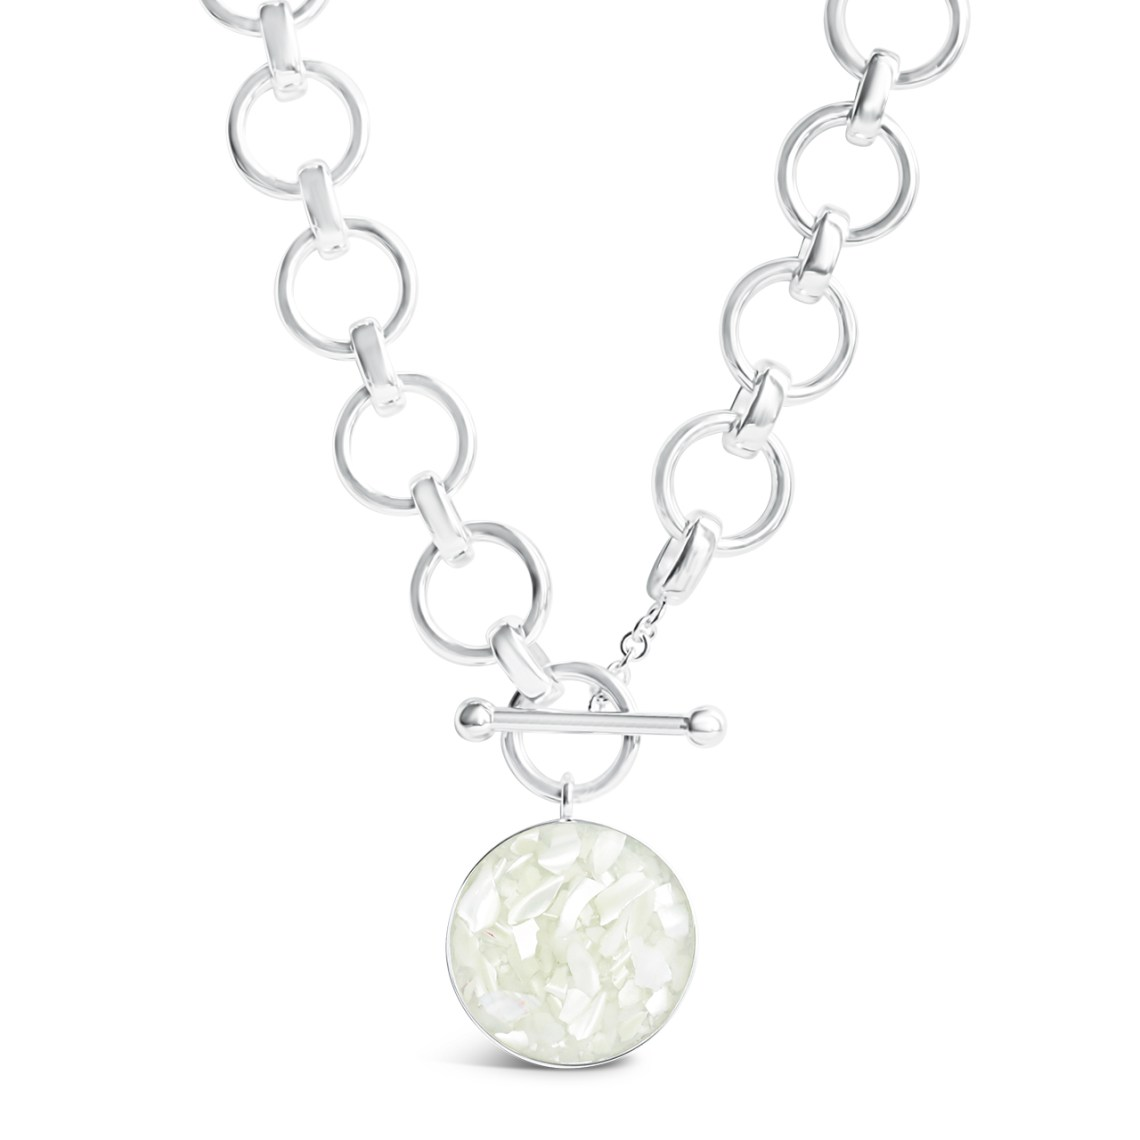 The Mediterranean Necklace Mother of Pearl